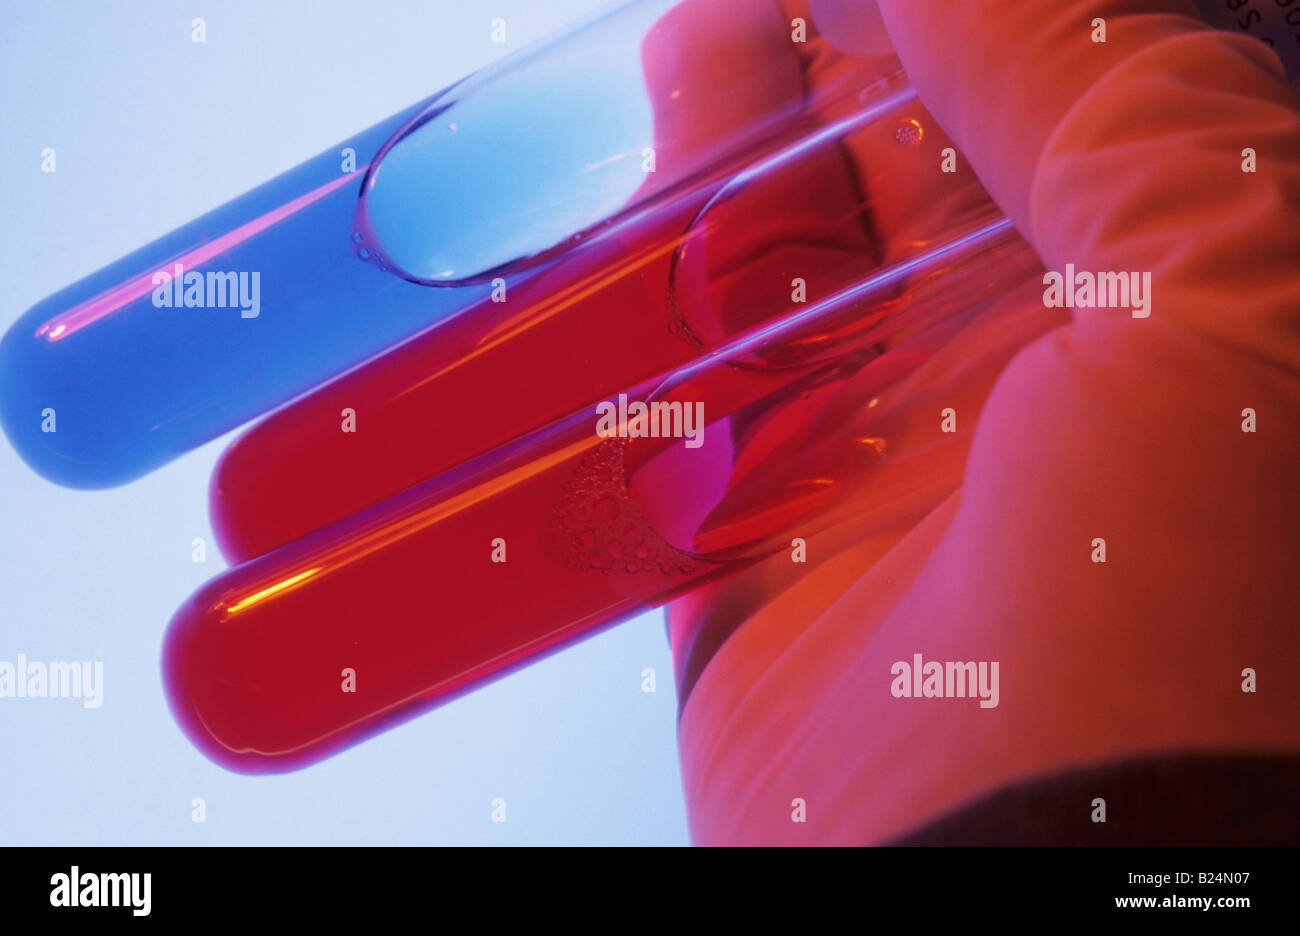 CLOSE UP GLOVED HAND HOLDING TEST TUBES - Stock Image